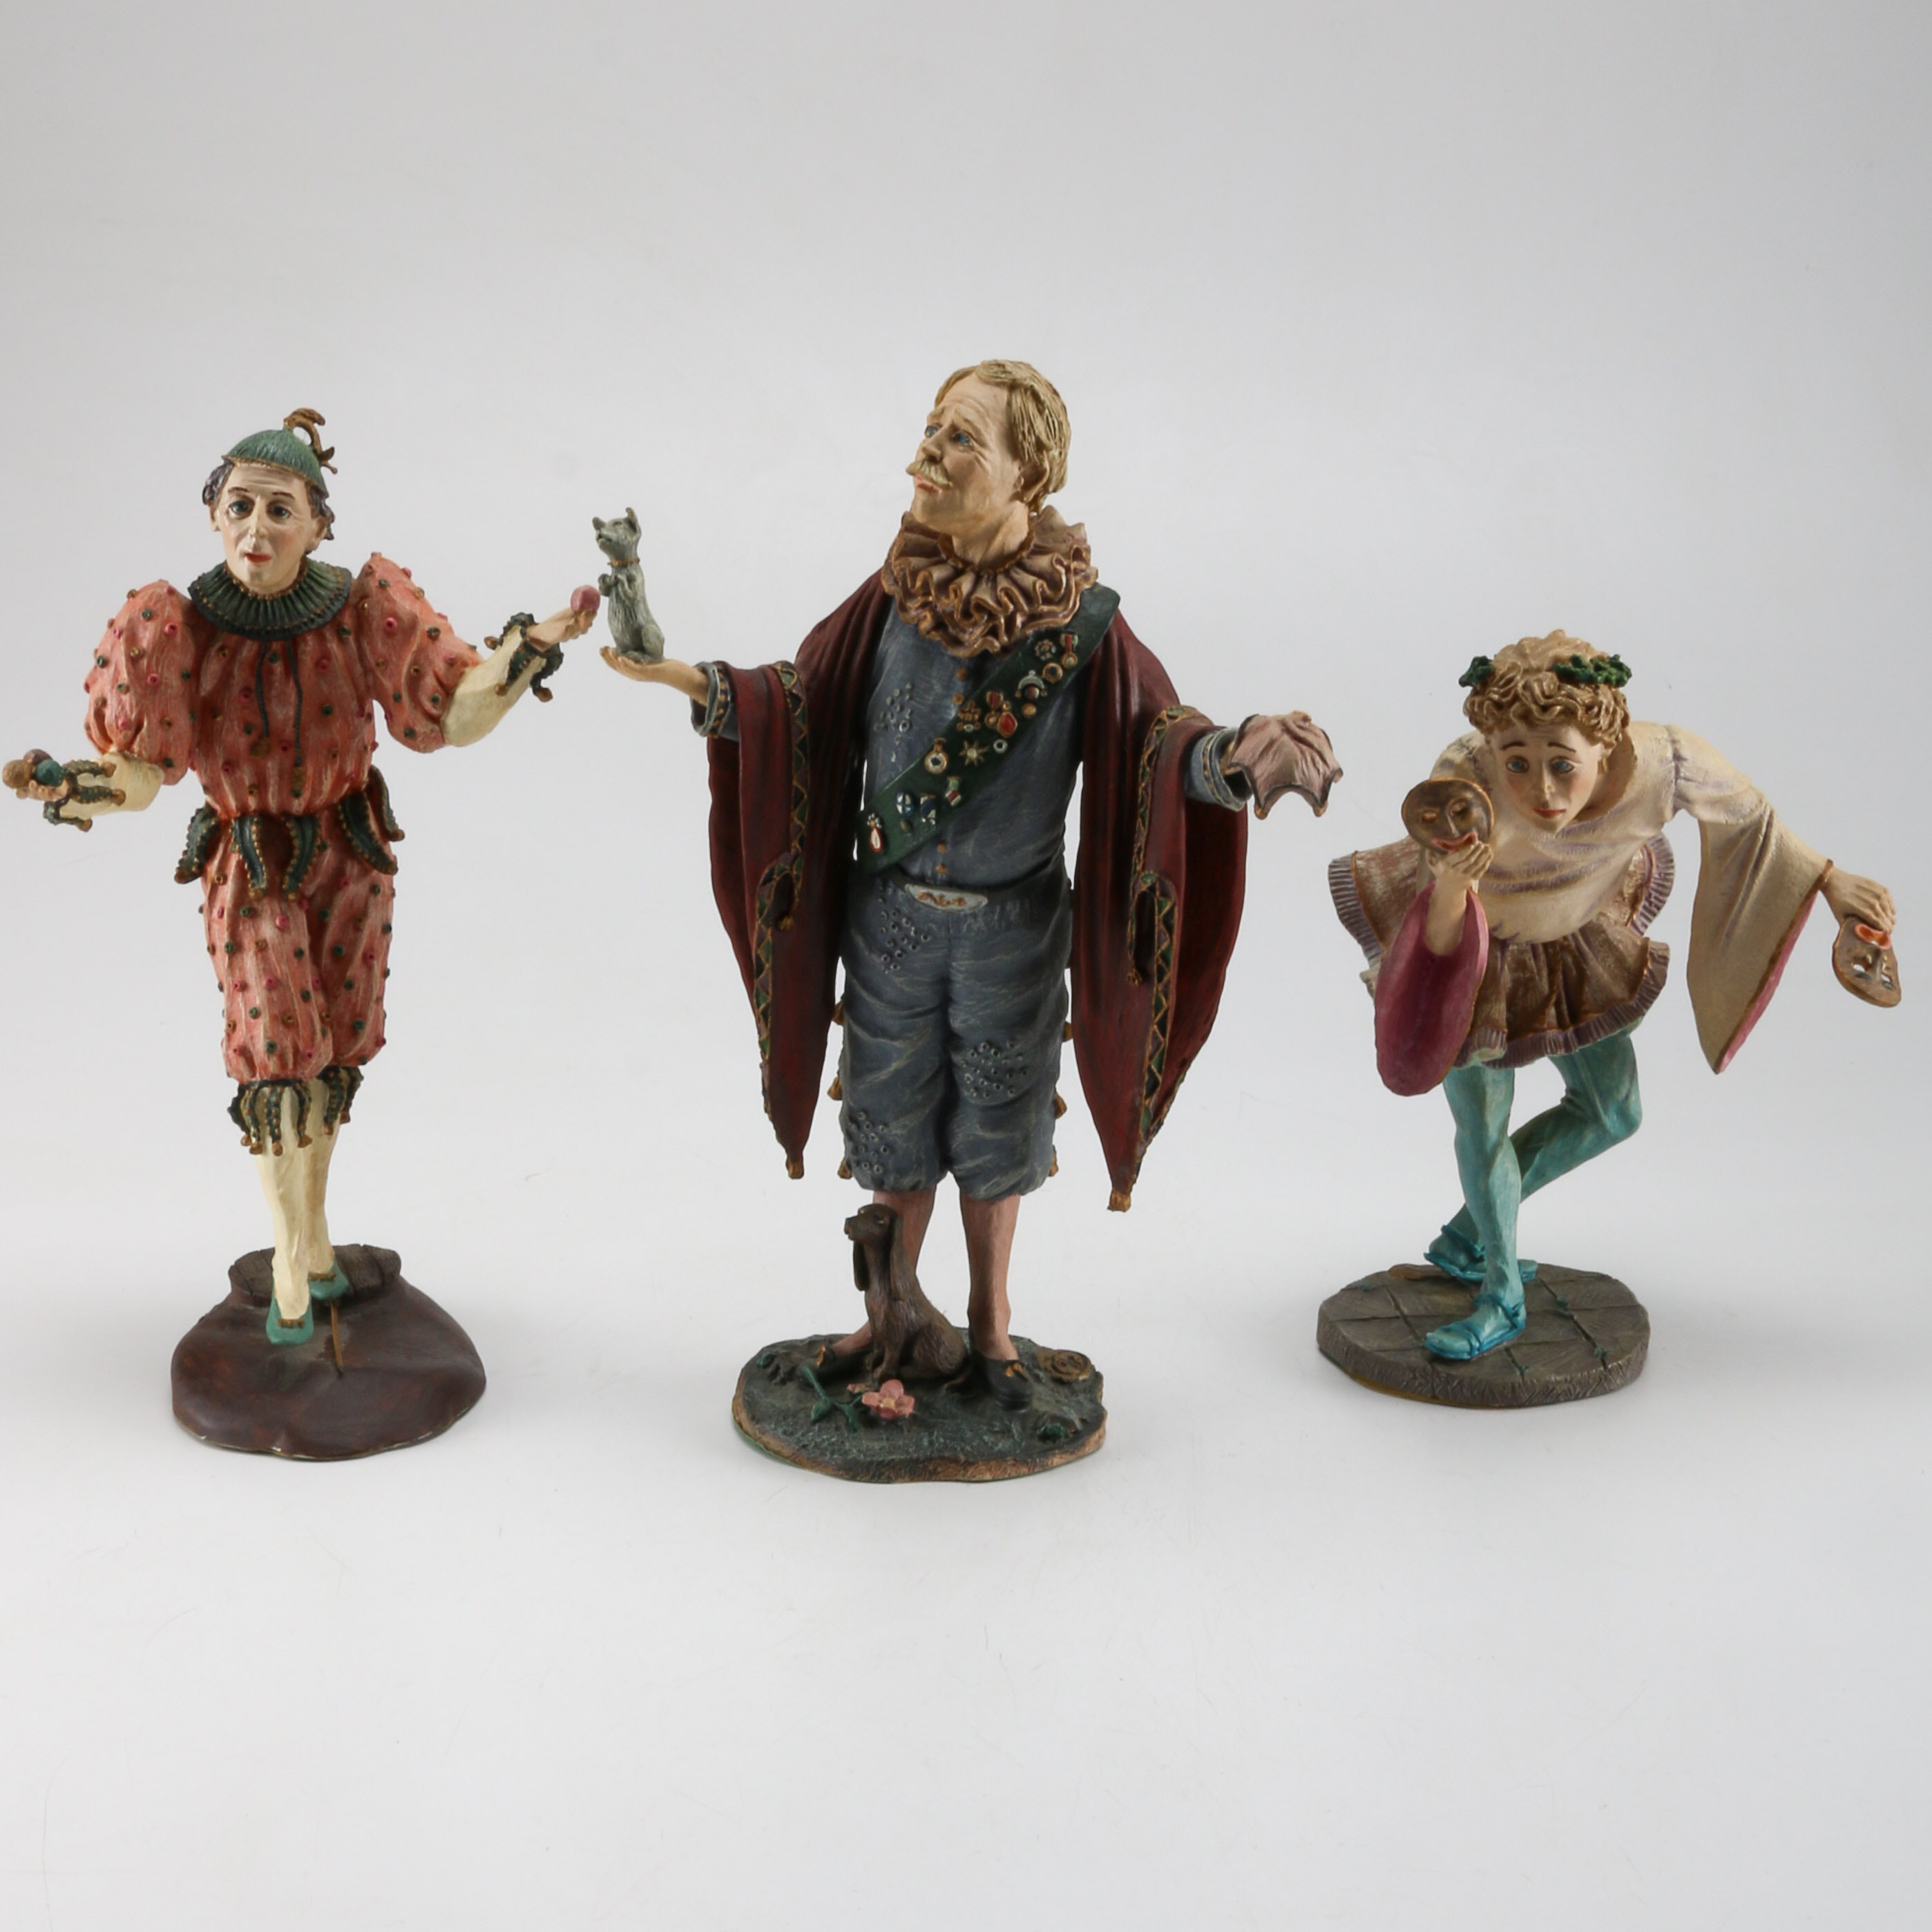 Numbered, Collectors Edition Duncan Royale Clown Figurines